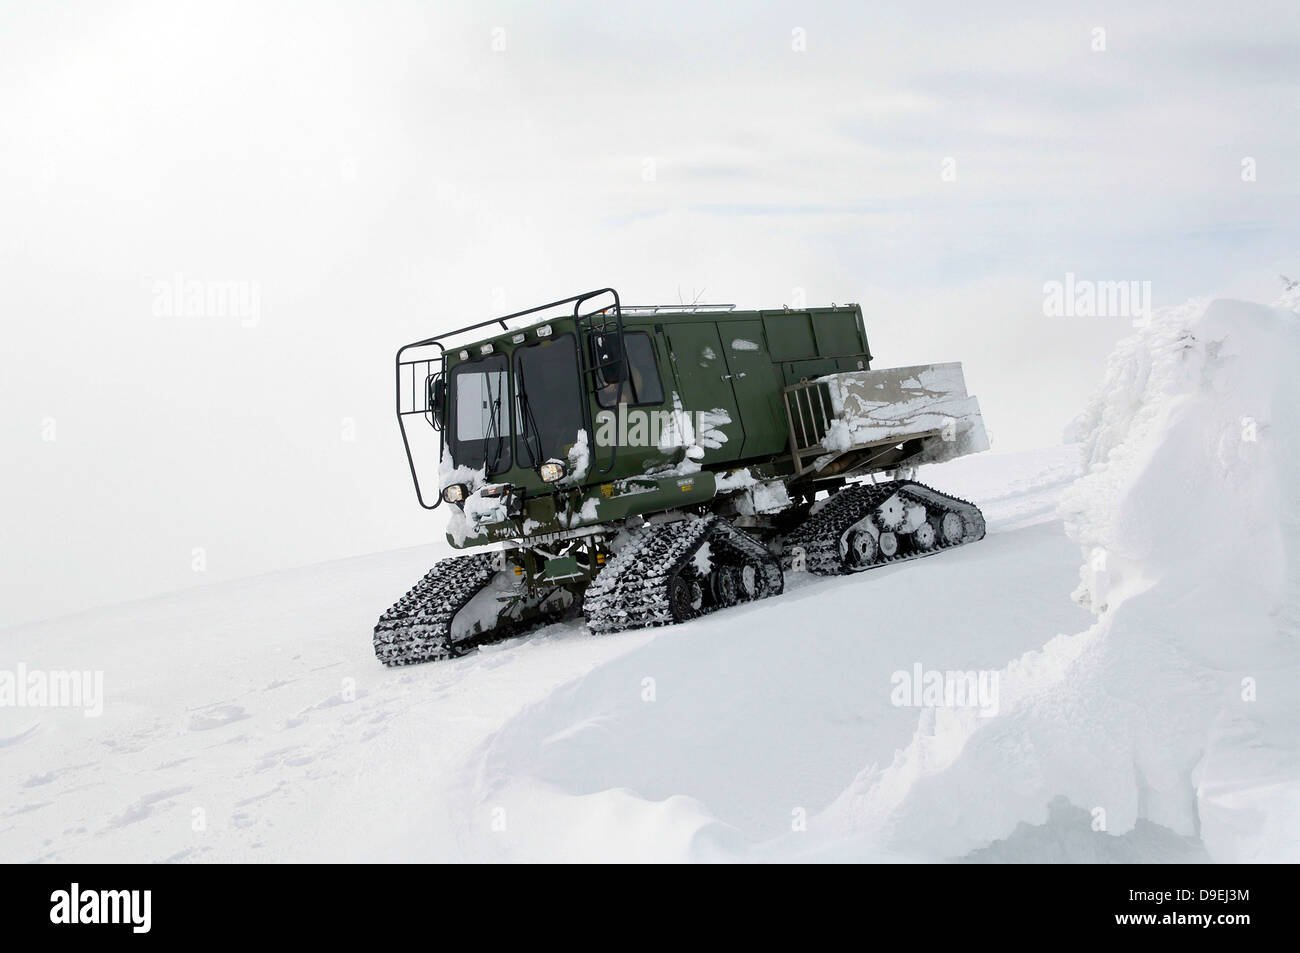 An all-terrain vehicle gets stuck on the Calispell Mountain Peak in Cusick, Washington. - Stock Image